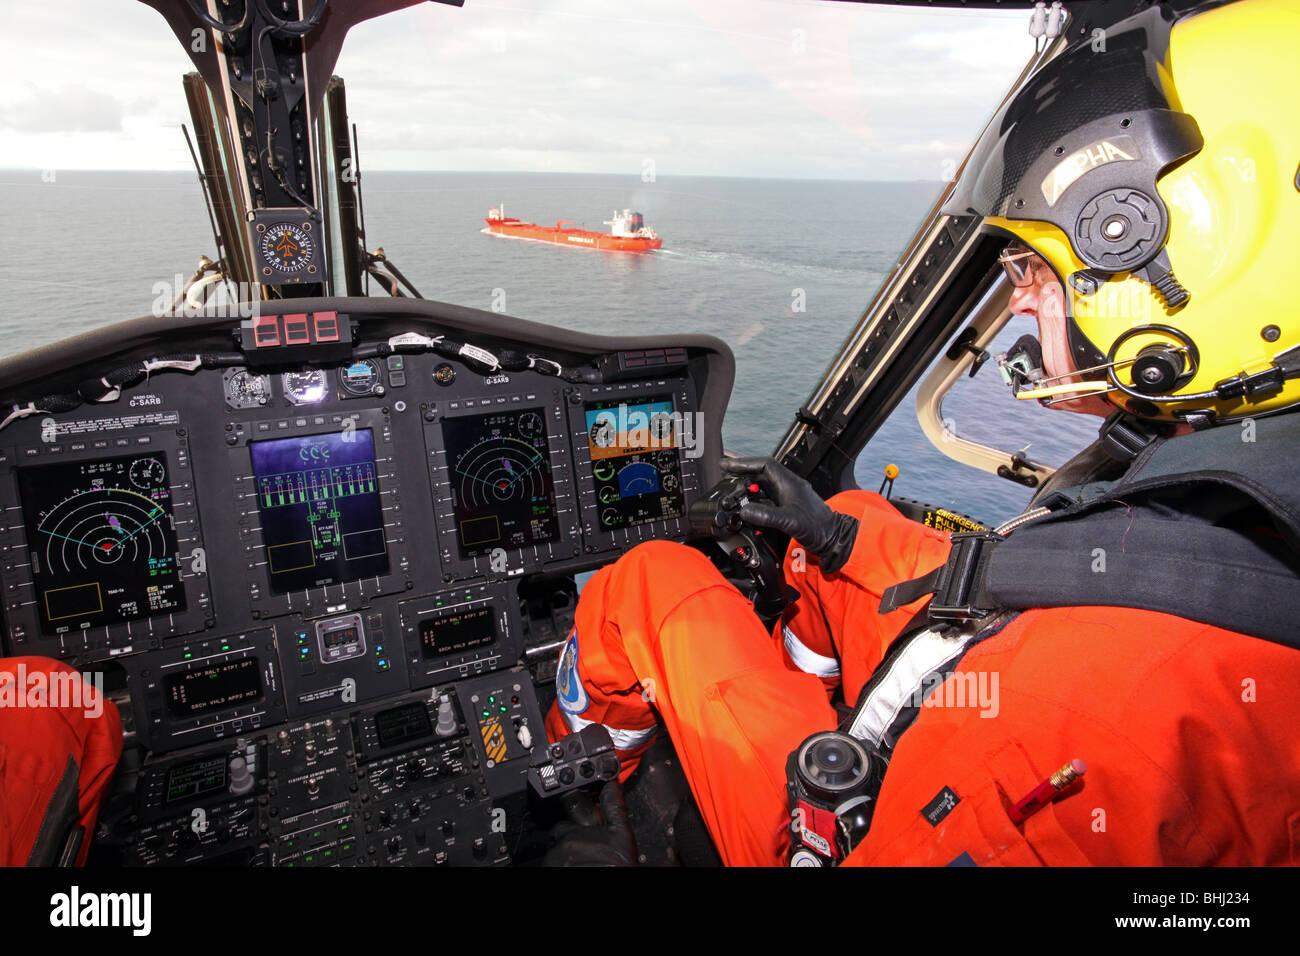 Sikorsky S 92 helicopter used by the Uk Coastguard for Search and Rescue, based at Sumburgh in Shetland, off the - Stock Image